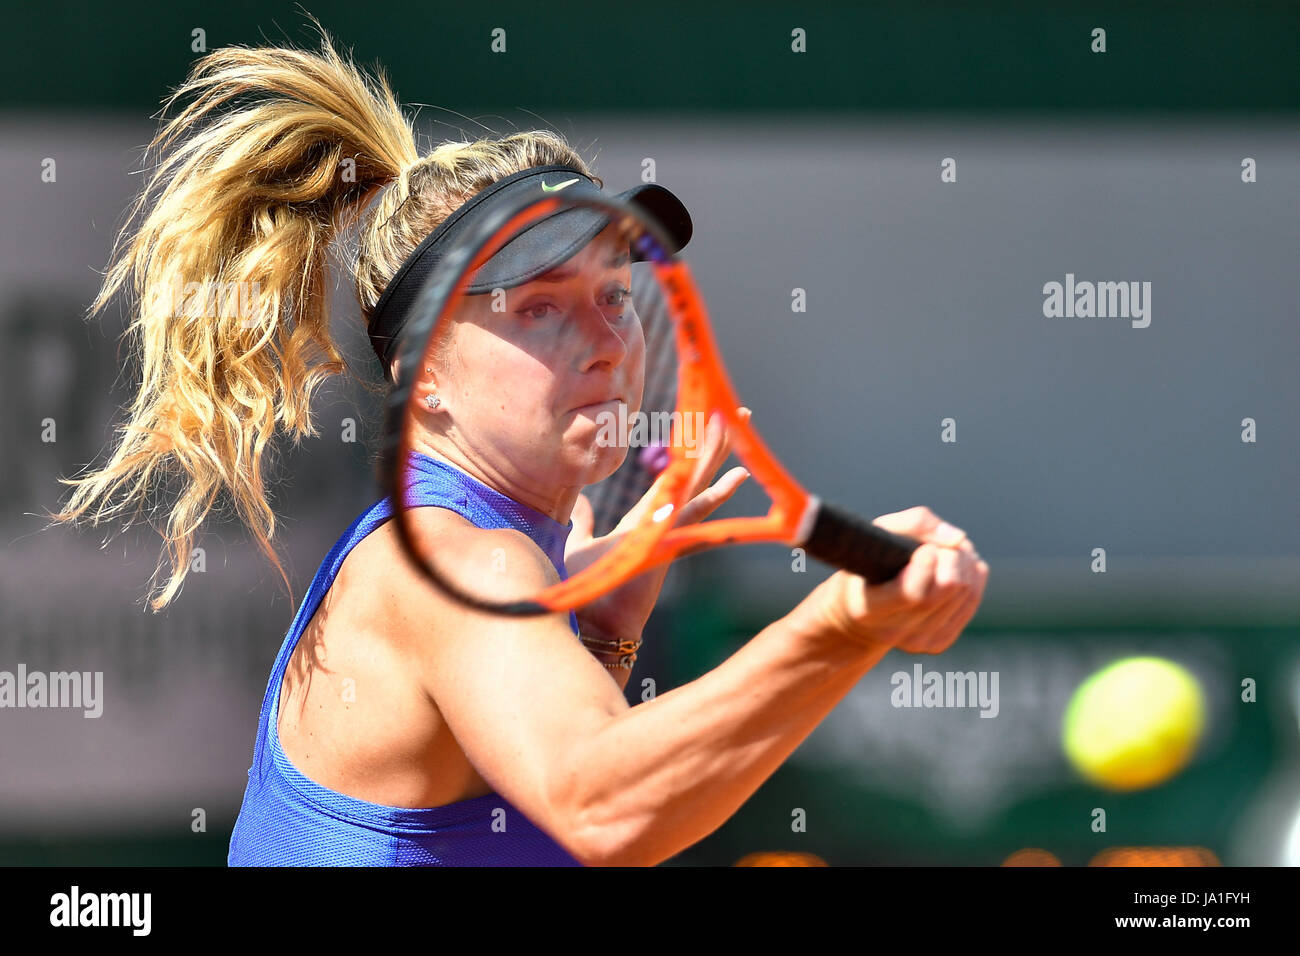 Paris. 4th June, 2017. Elina Svitolina of Ukraine competes during the women's singles 3rd round match against Magda Stock Photo